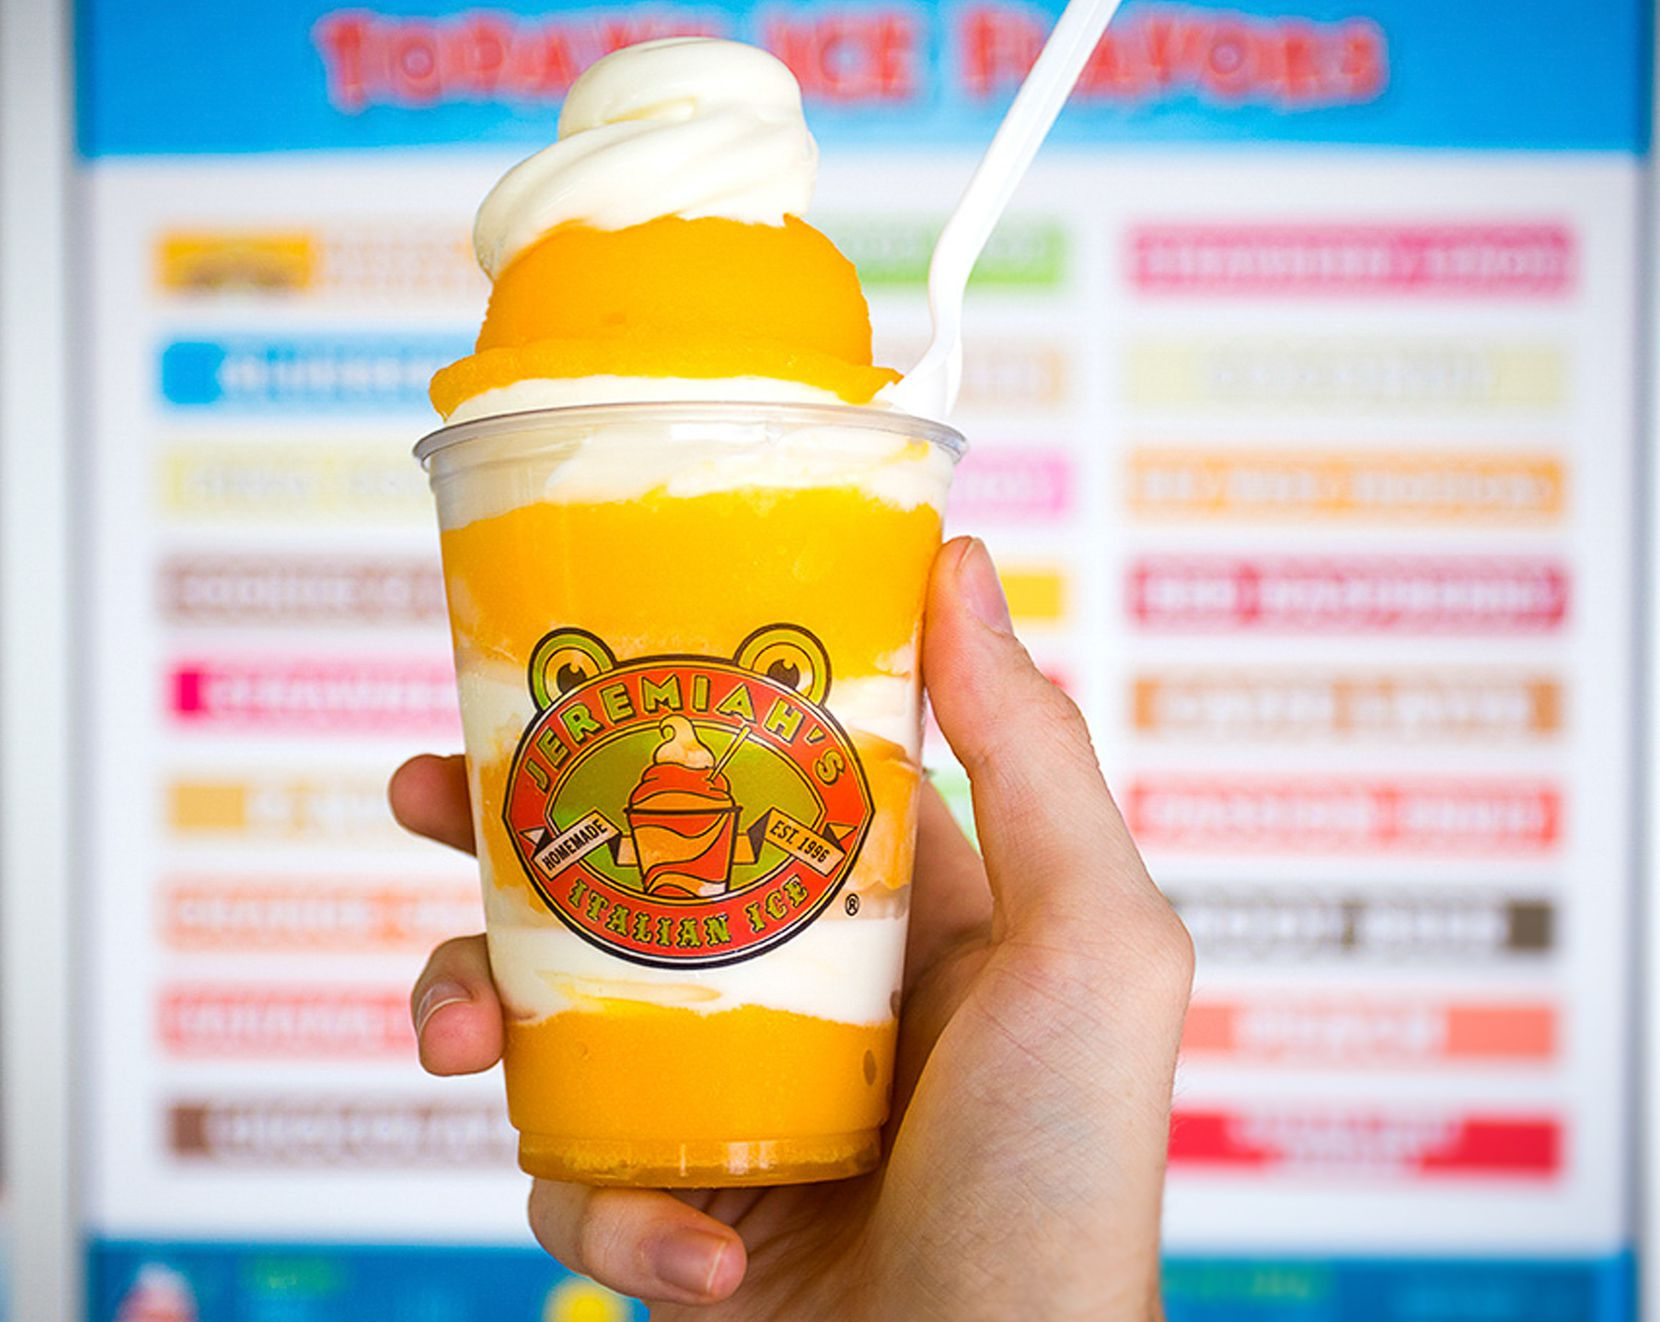 Jeremiah's Italian Ice serves smooth, flavored ice desserts swirled with soft-serve ice cream. The first Jeremiah's in Texas is expected to open in McKinney in June 2020. //we have permission to use this photo//